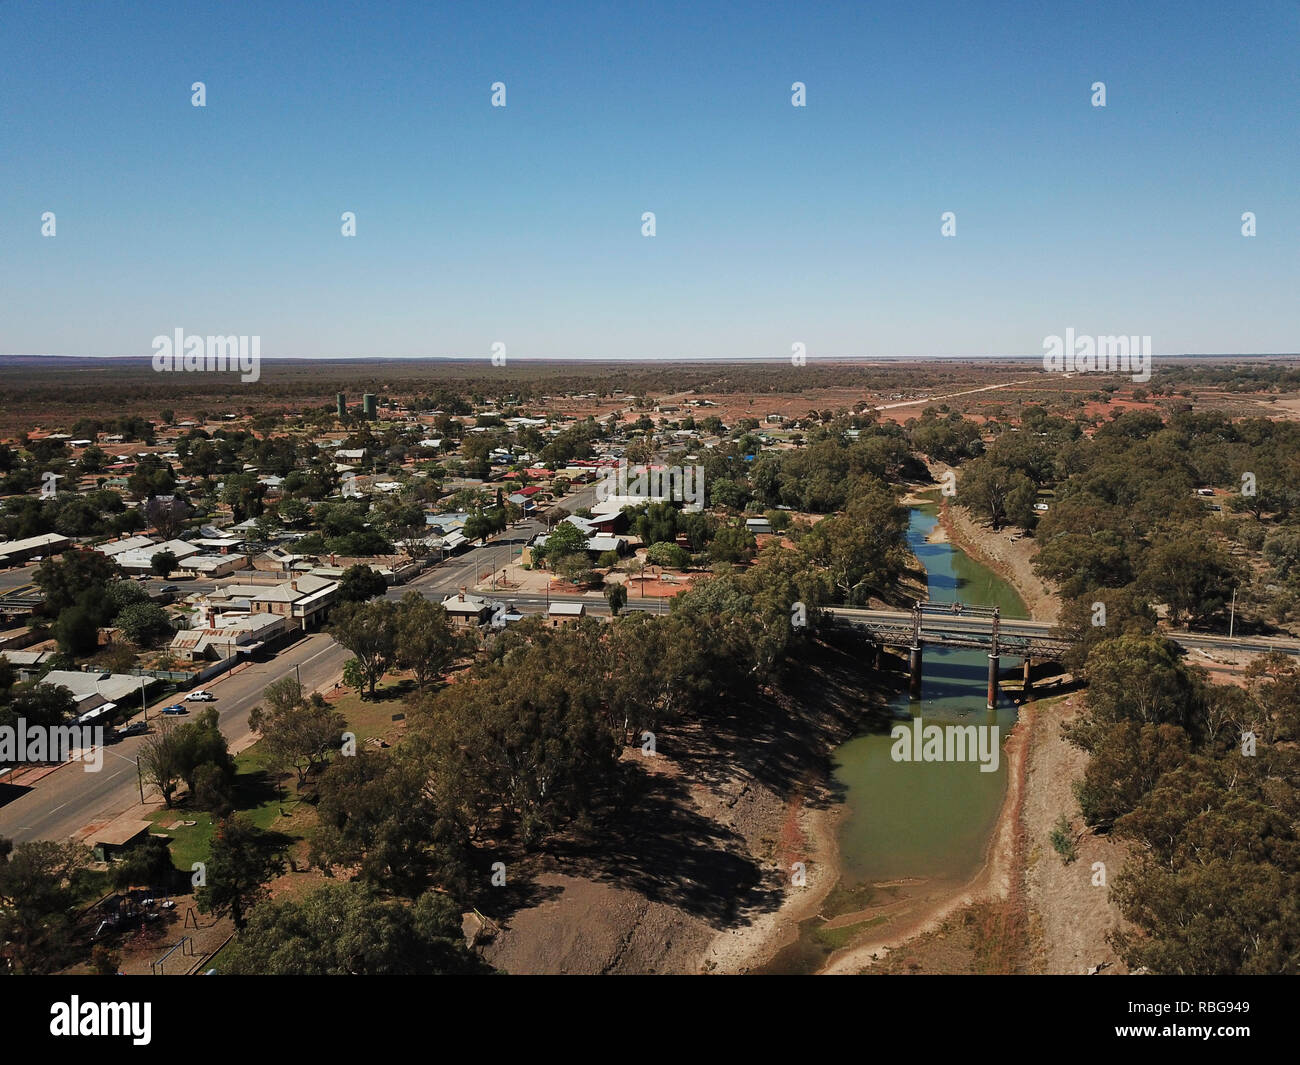 The Darling River during drought conditions at Wilcannia  New South Wales Australia - Stock Image